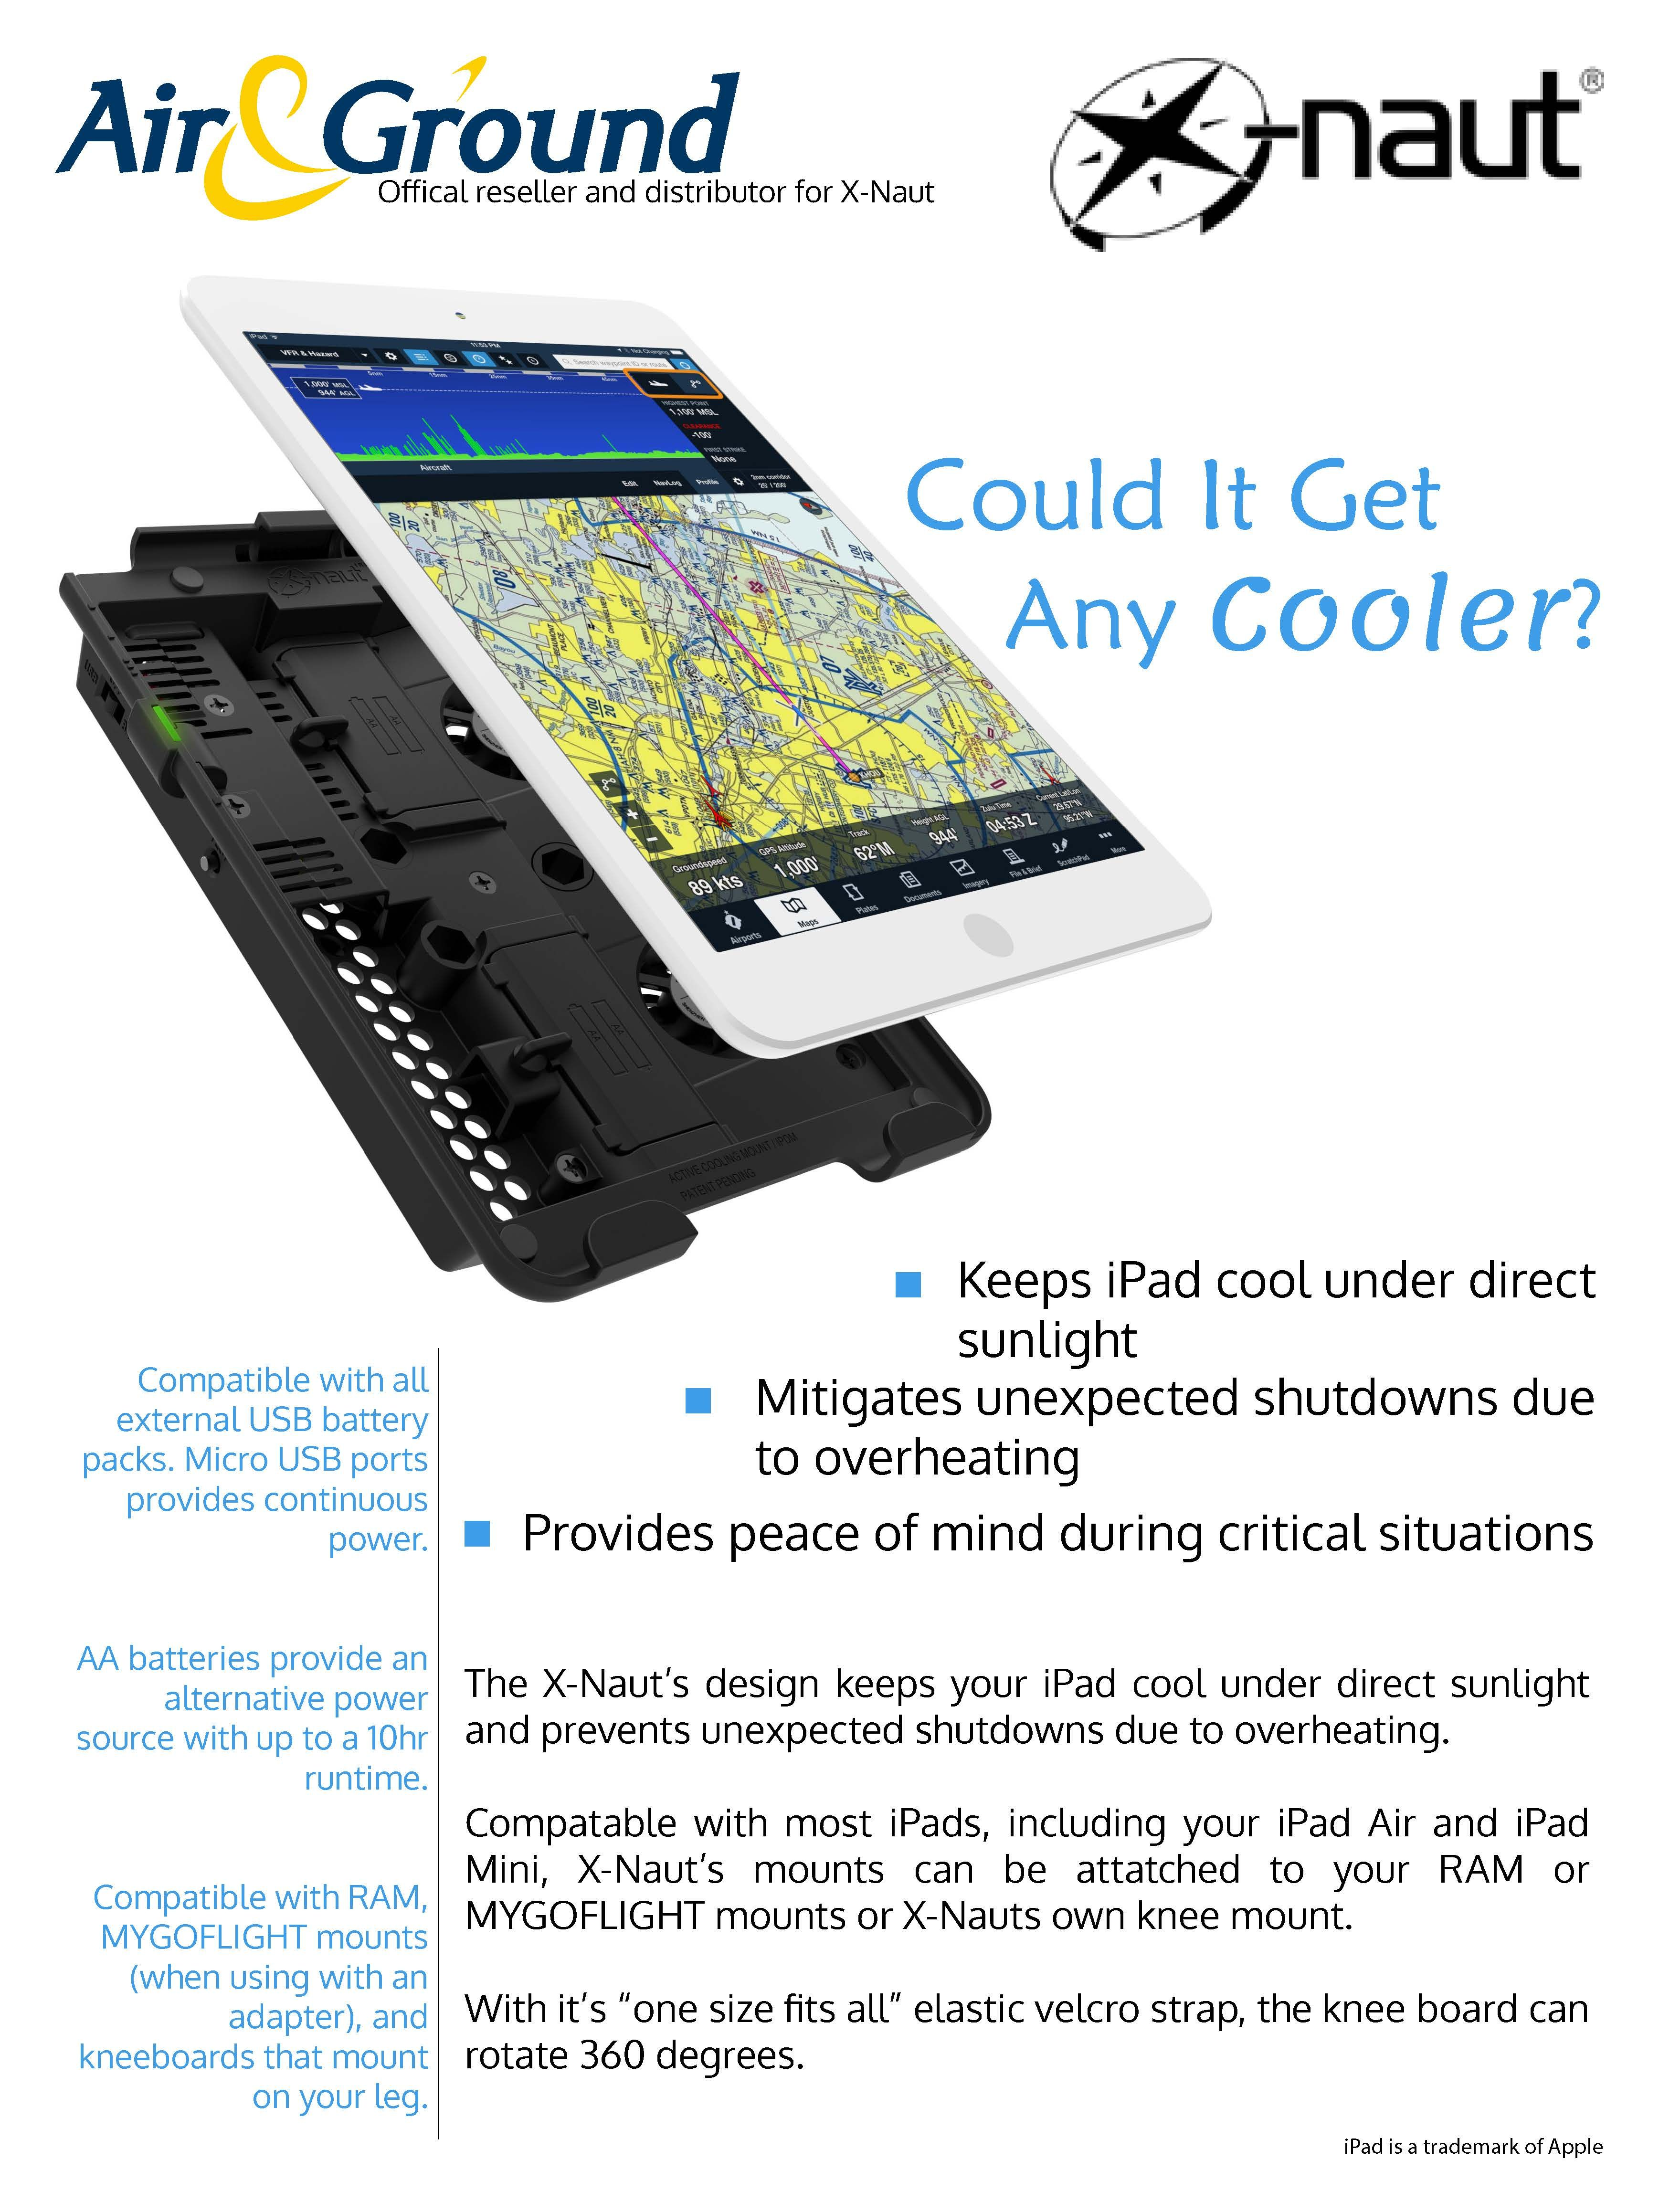 Introducing Xnaut. The active cooling mount for your iPad